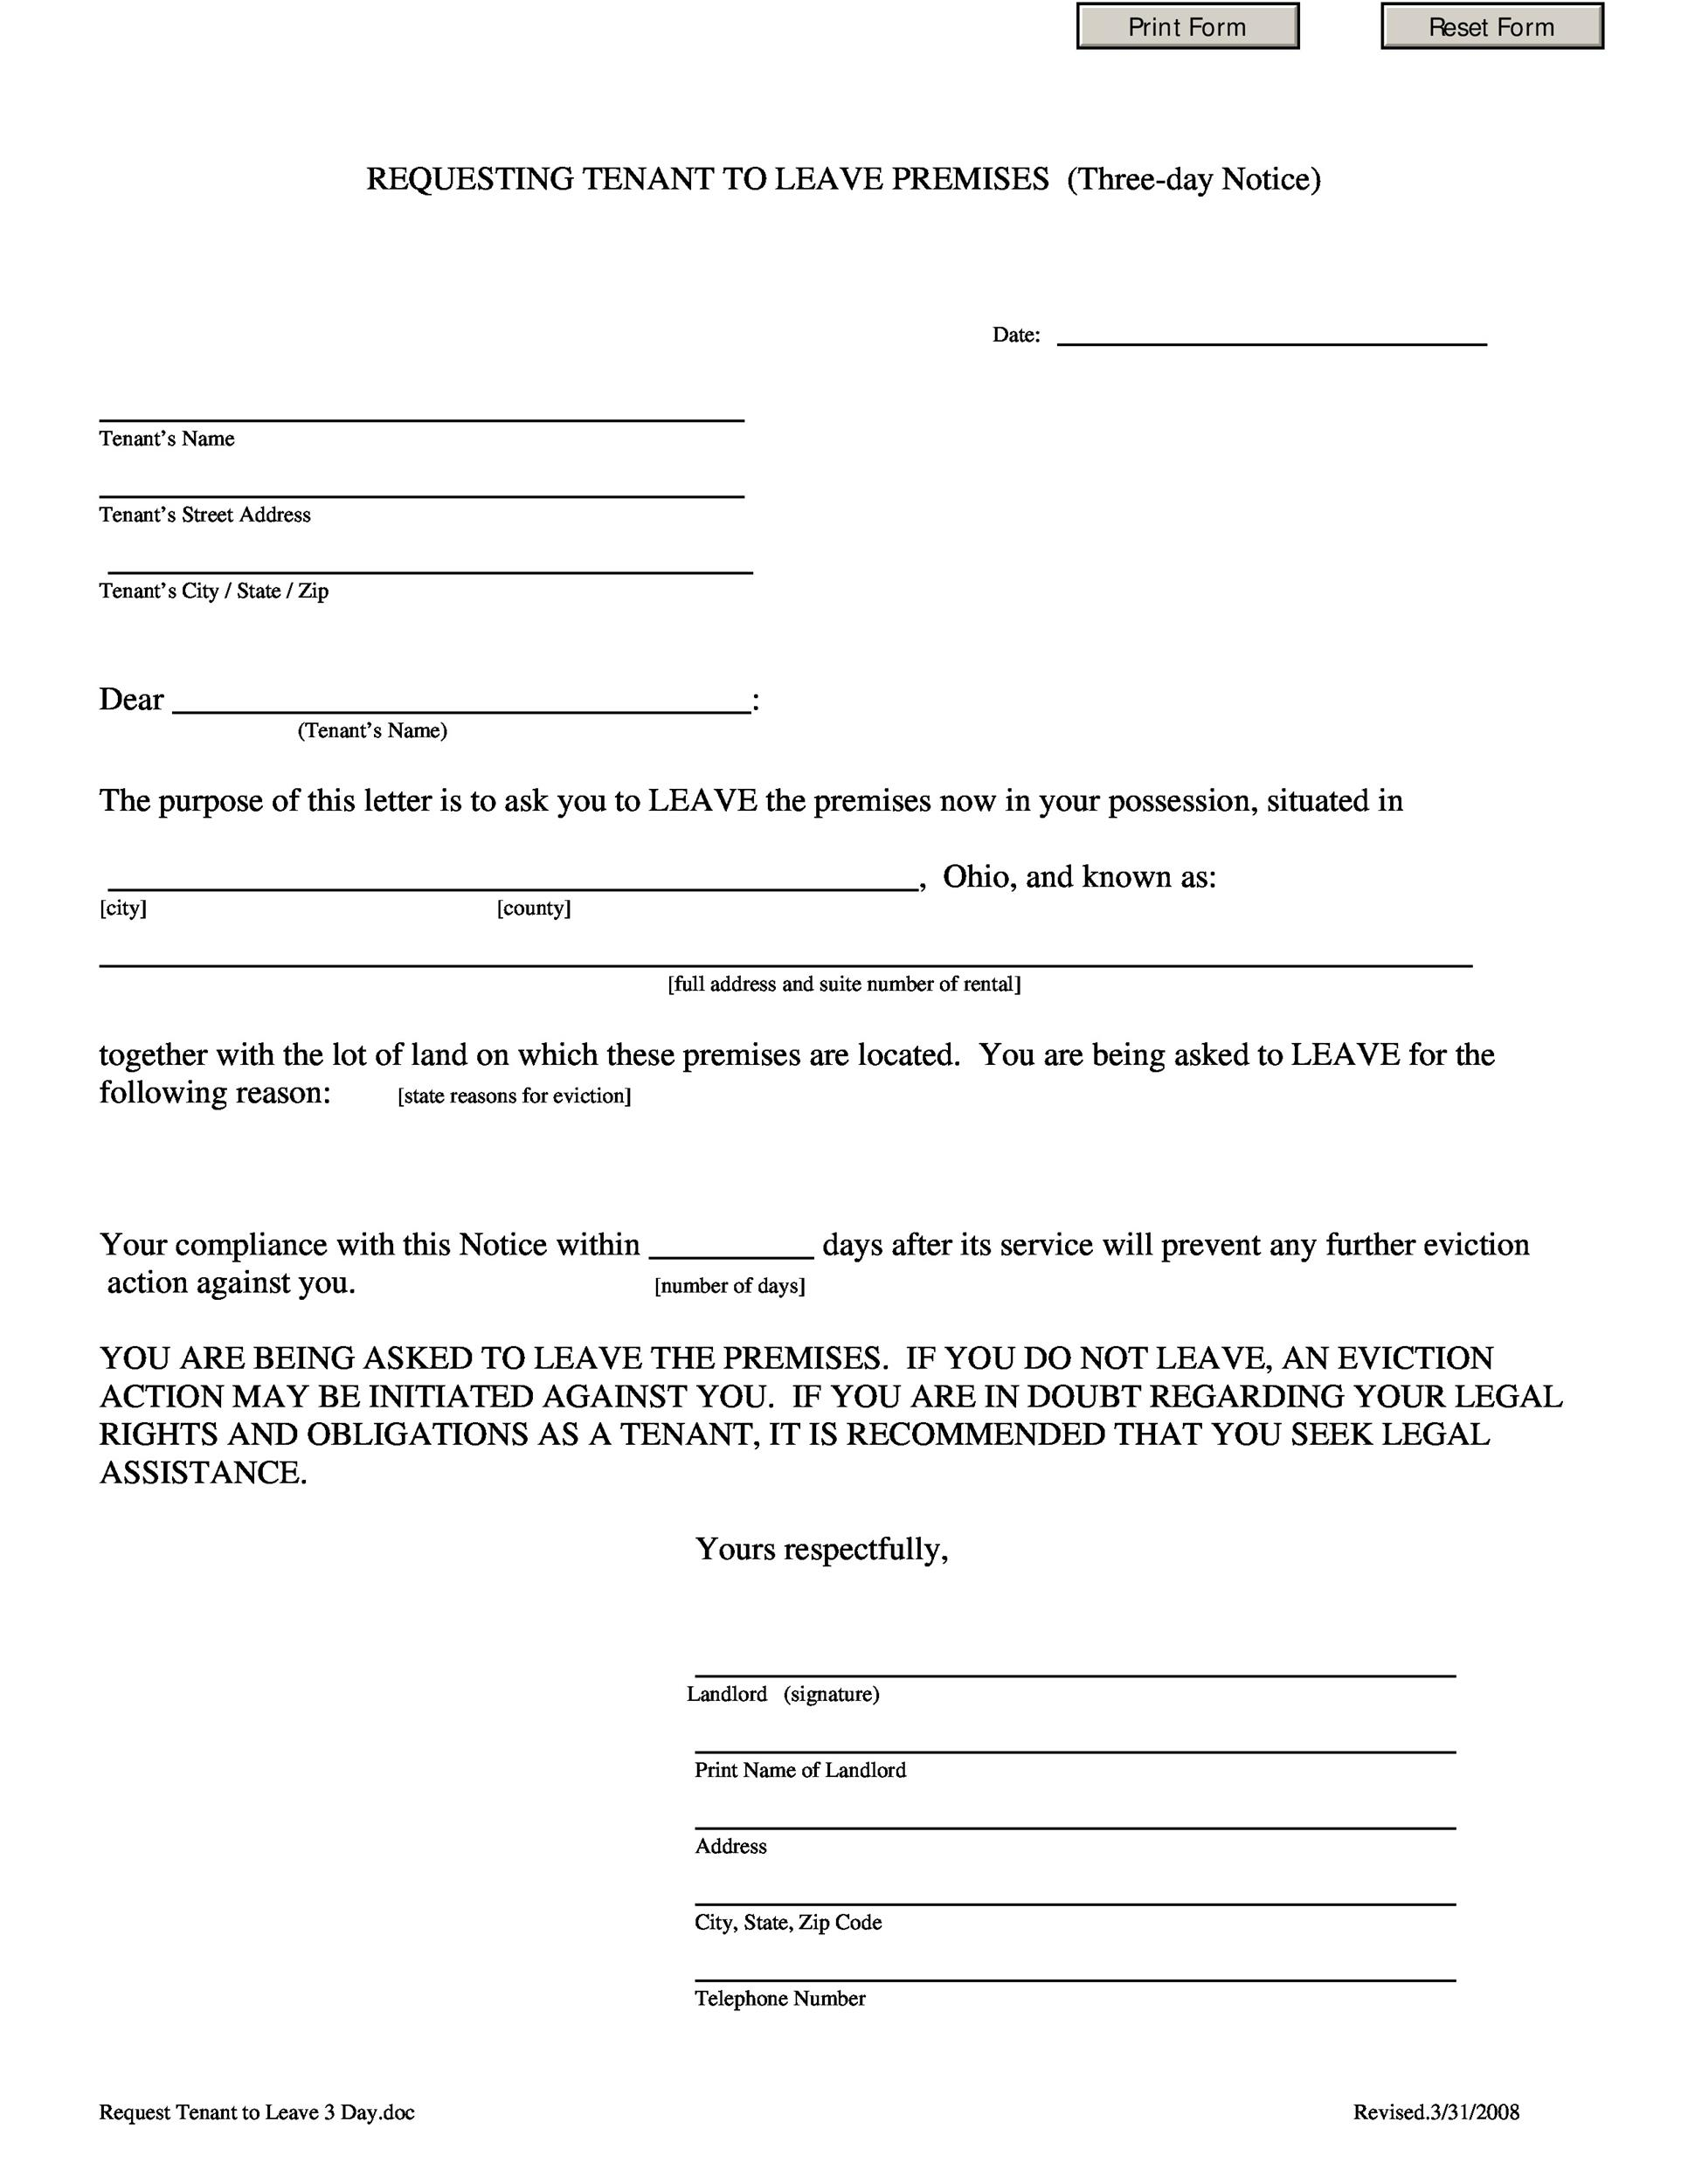 printable requesting tenant to leave premises